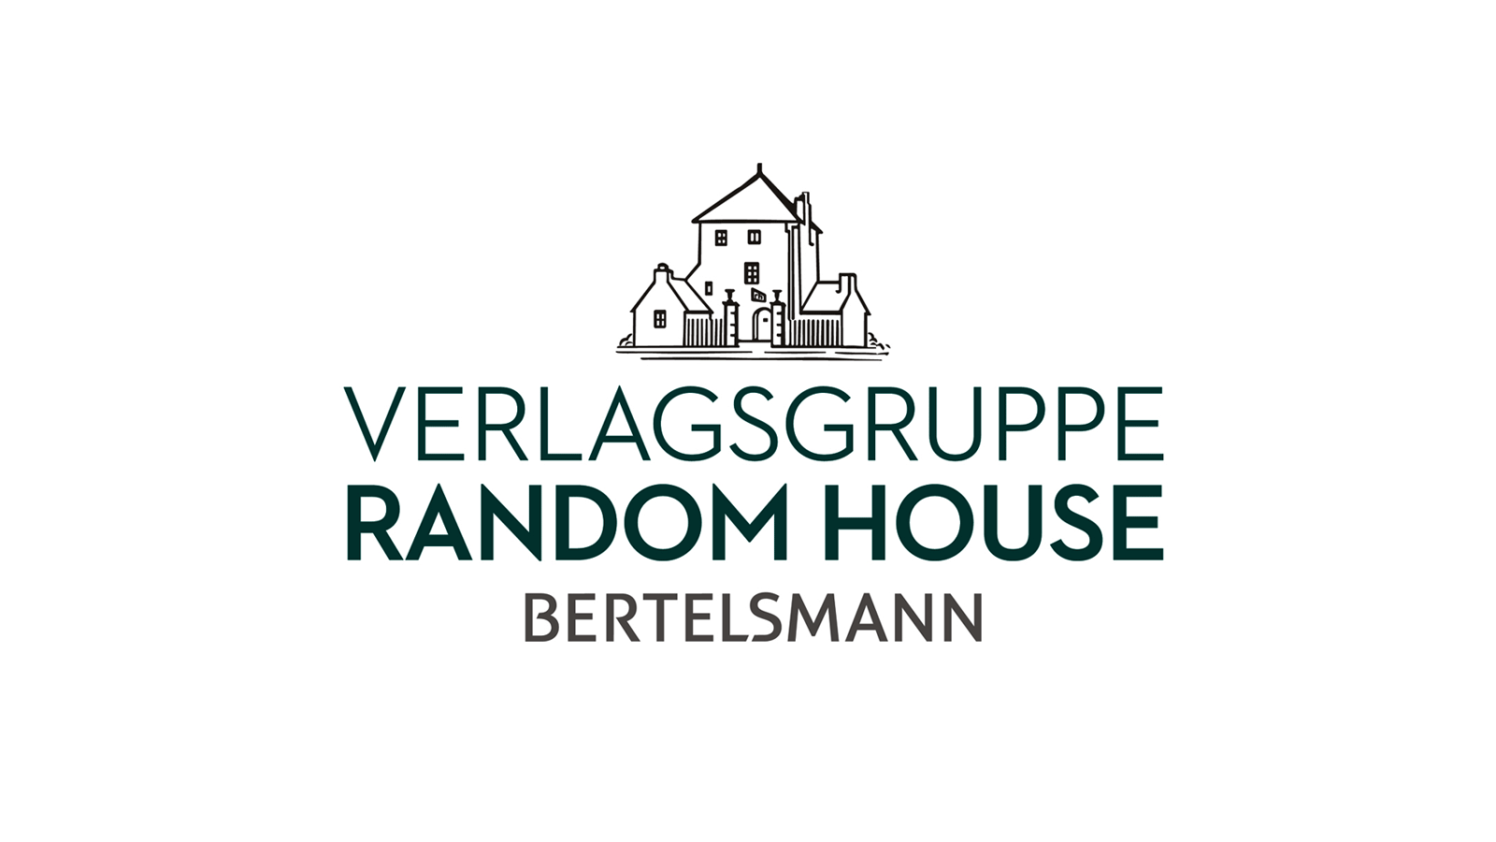 Markus Dohle, Chairman of Penguin Random House and member of the  Bertelsmann Executive Board, appoints Thomas Rathnow as CEO of  Verlagsgruppe Random House ...